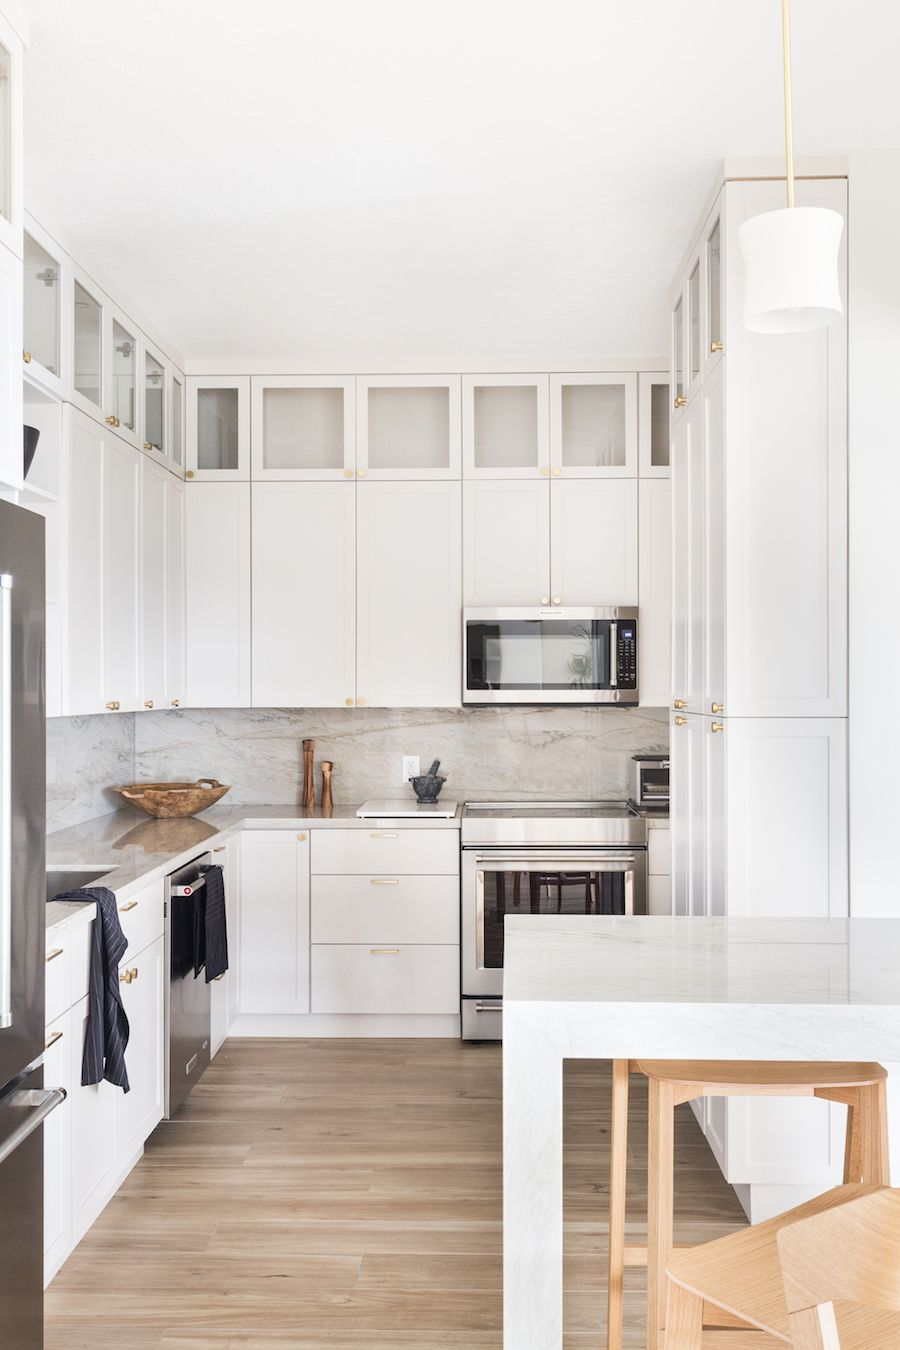 Before & After: This Kitchen Is Now Packed With Storage | Miami ...